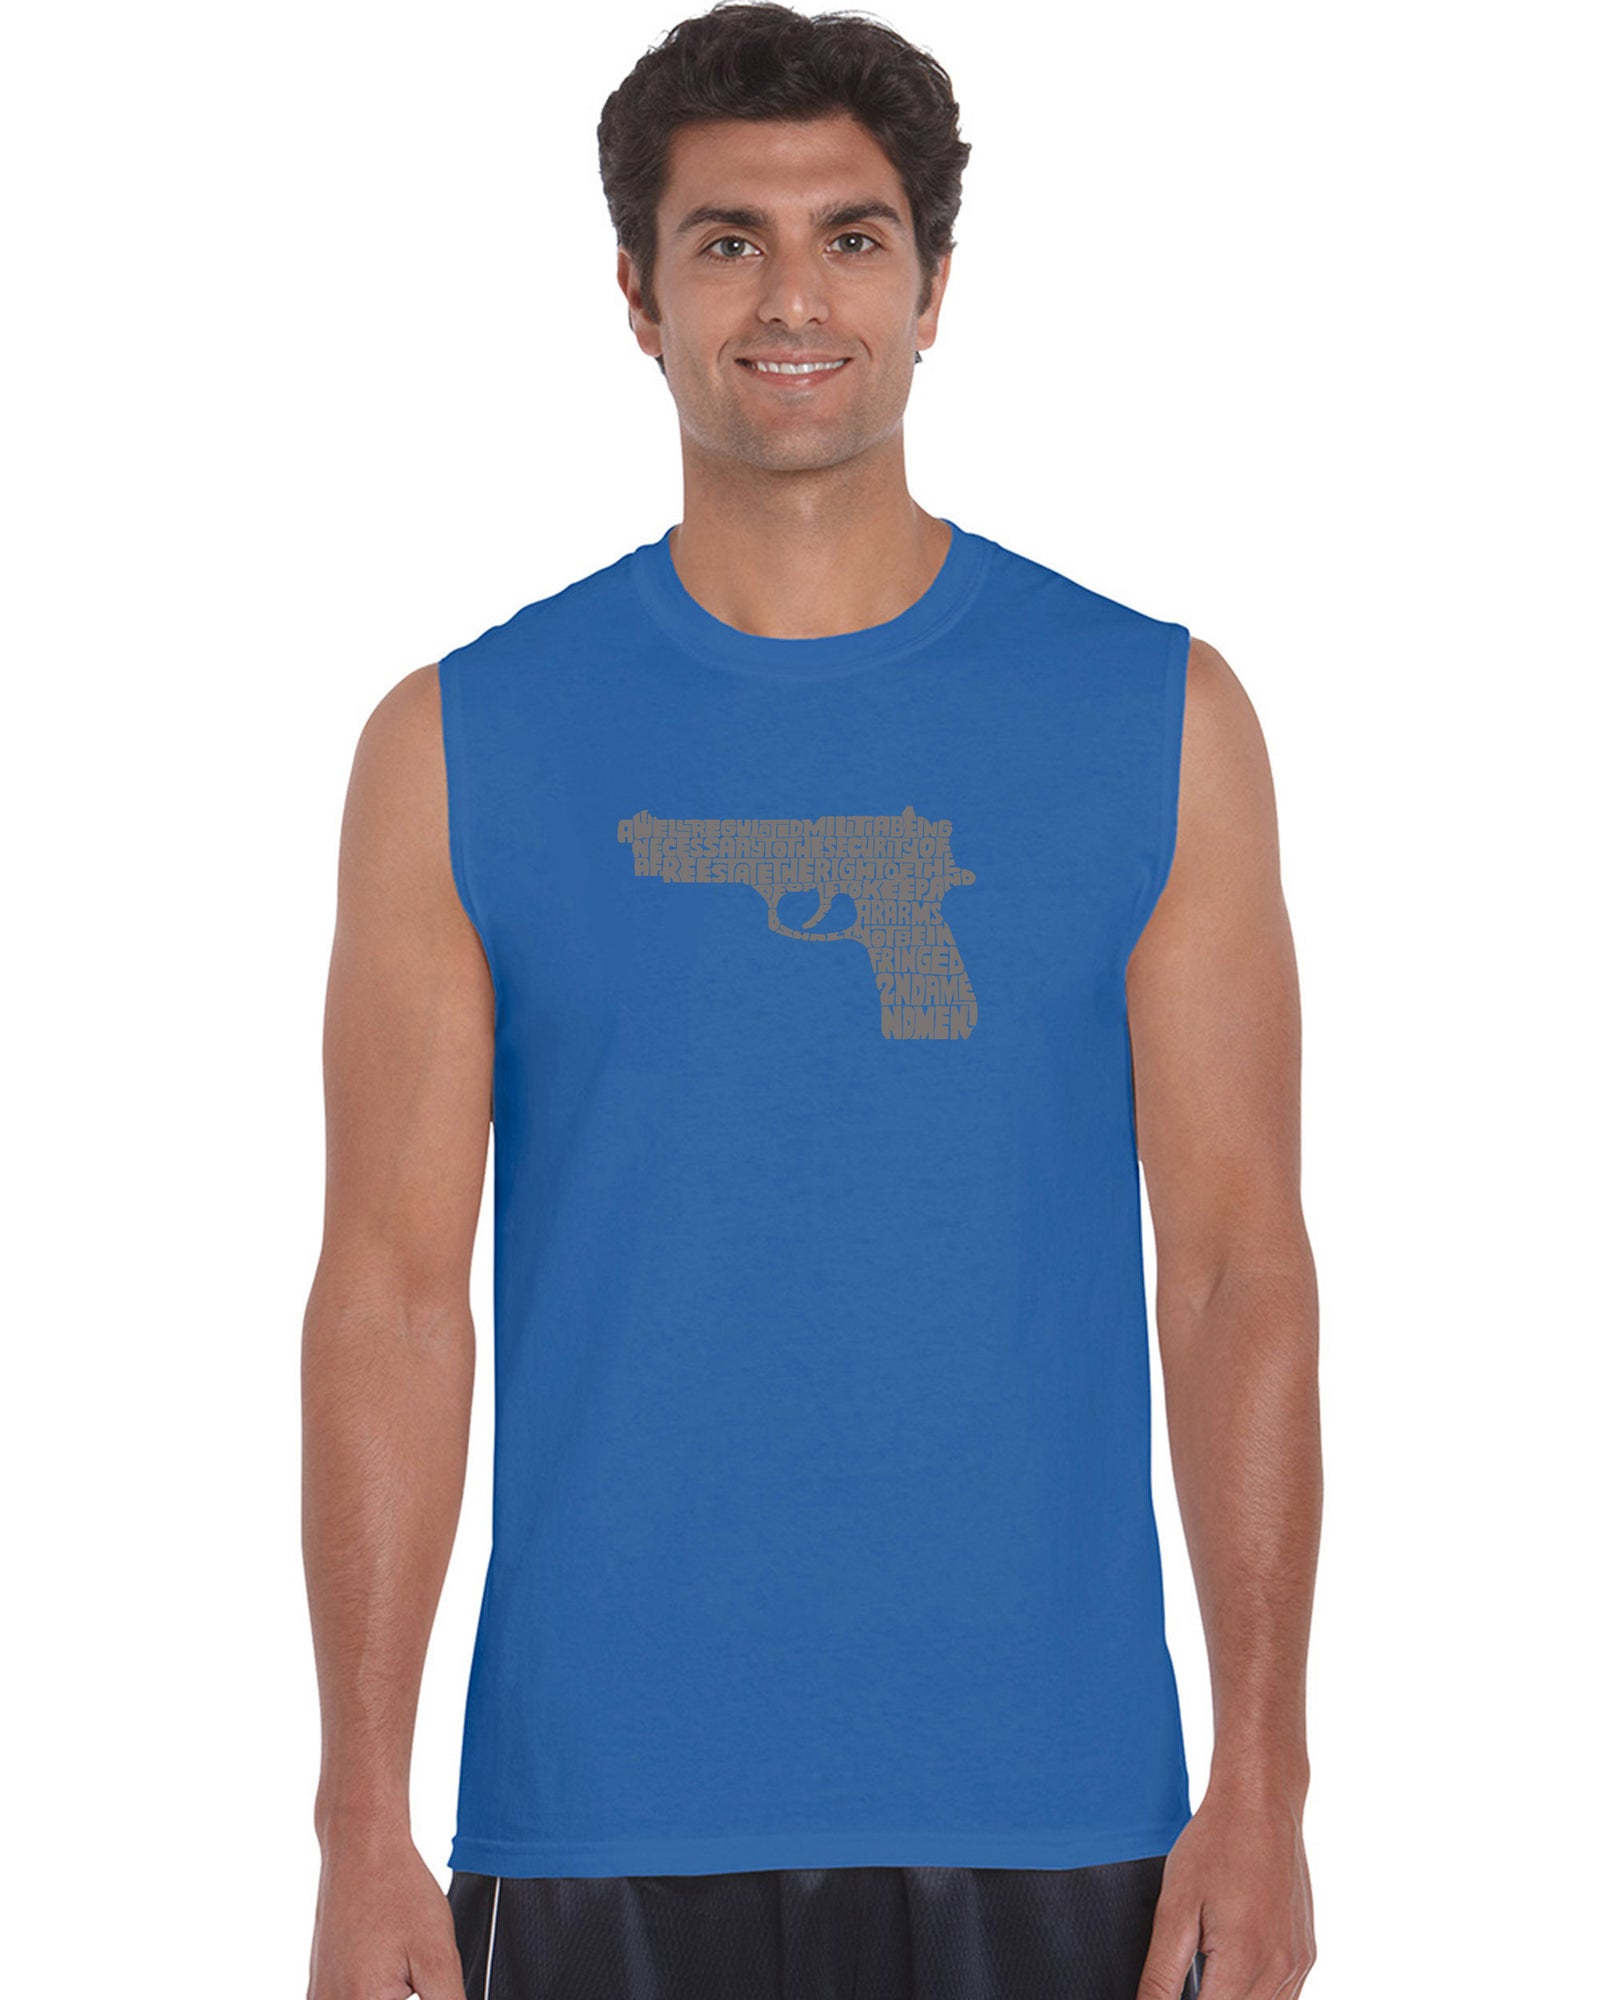 Men's Sleeveless T-shirt - RIGHT TO BEAR ARMS